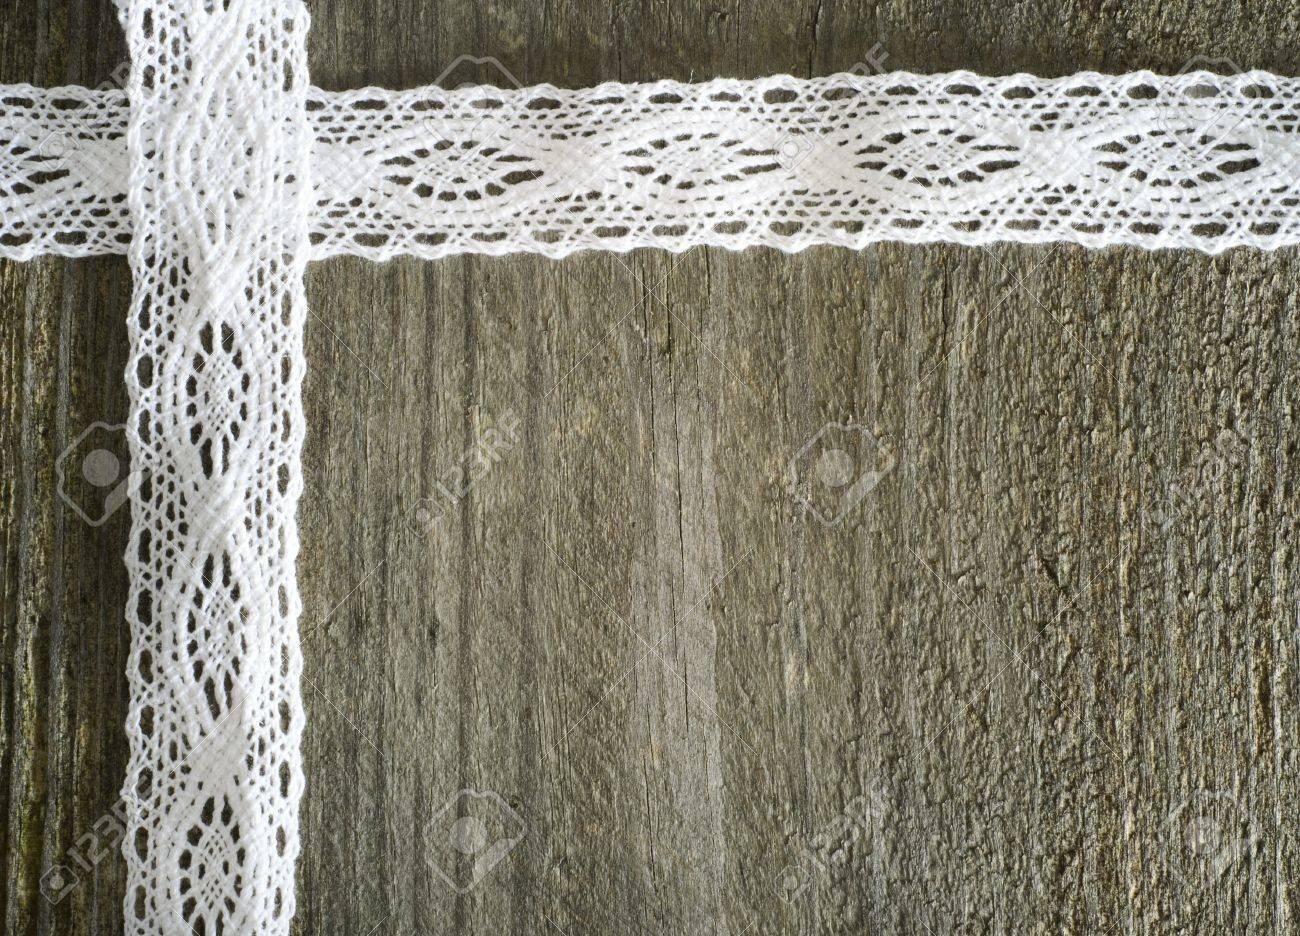 White Lace On The Wooden Gray Background Rustic Stock Photo